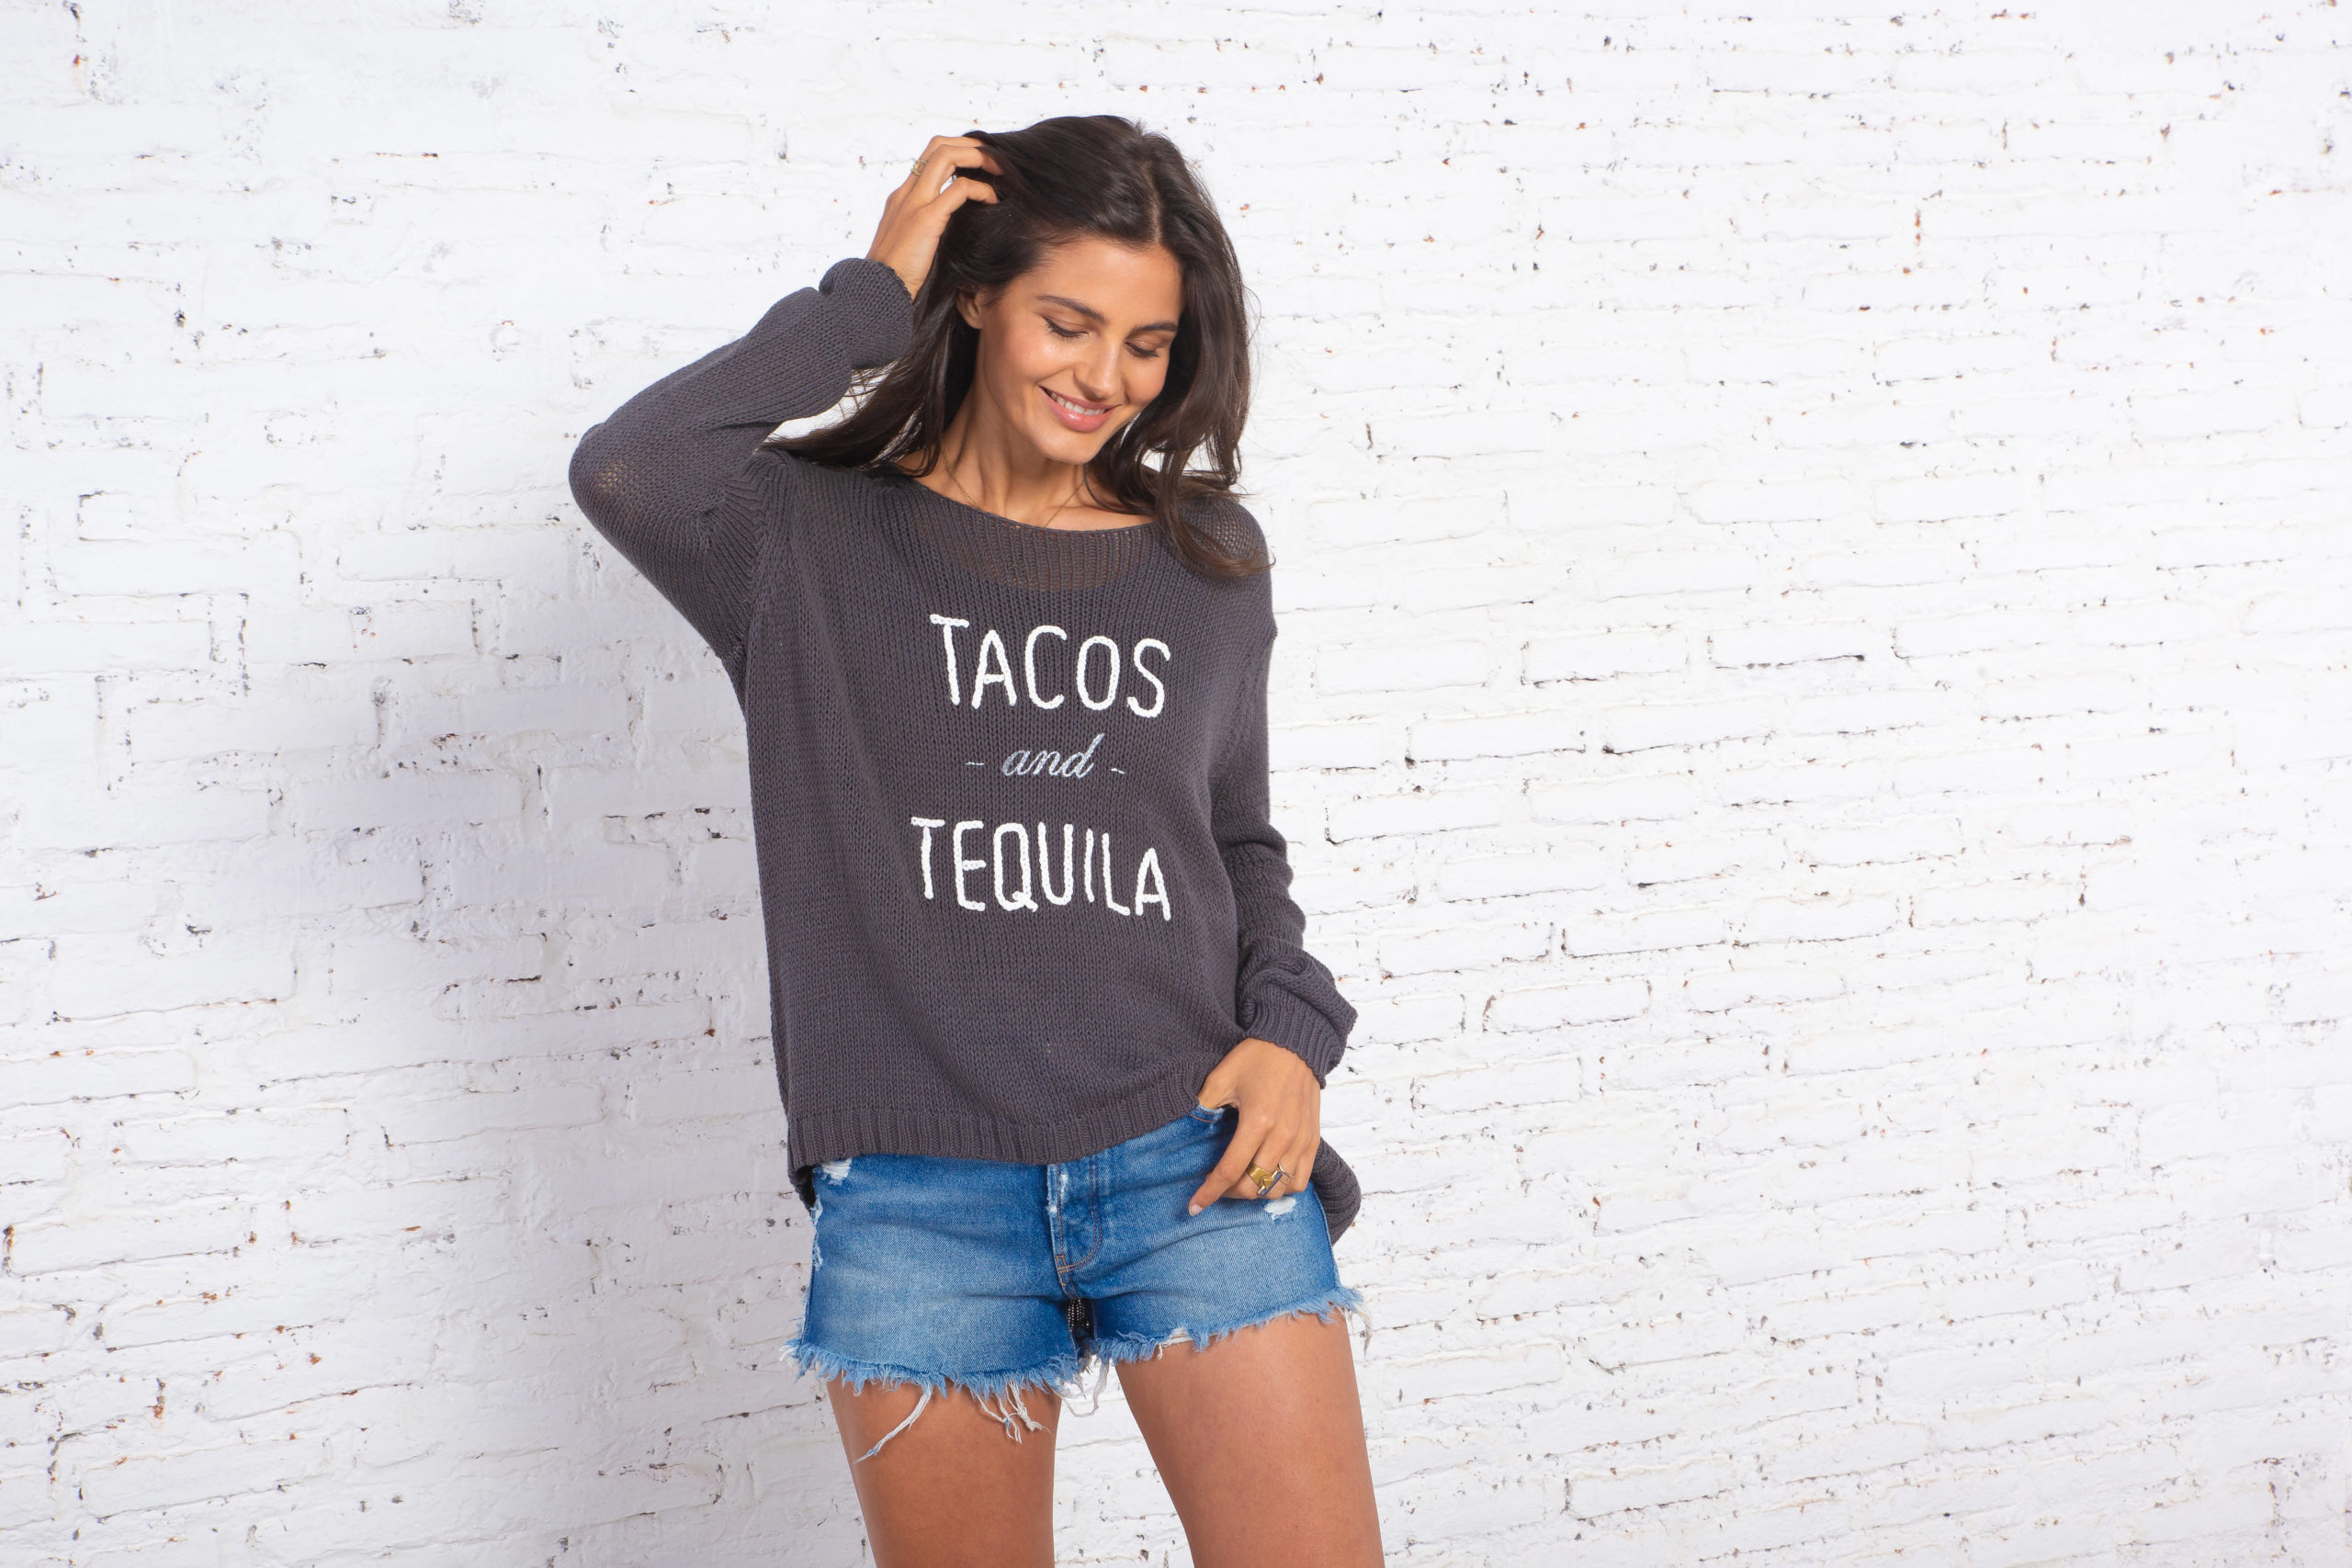 Tacos & Tequila Sweater